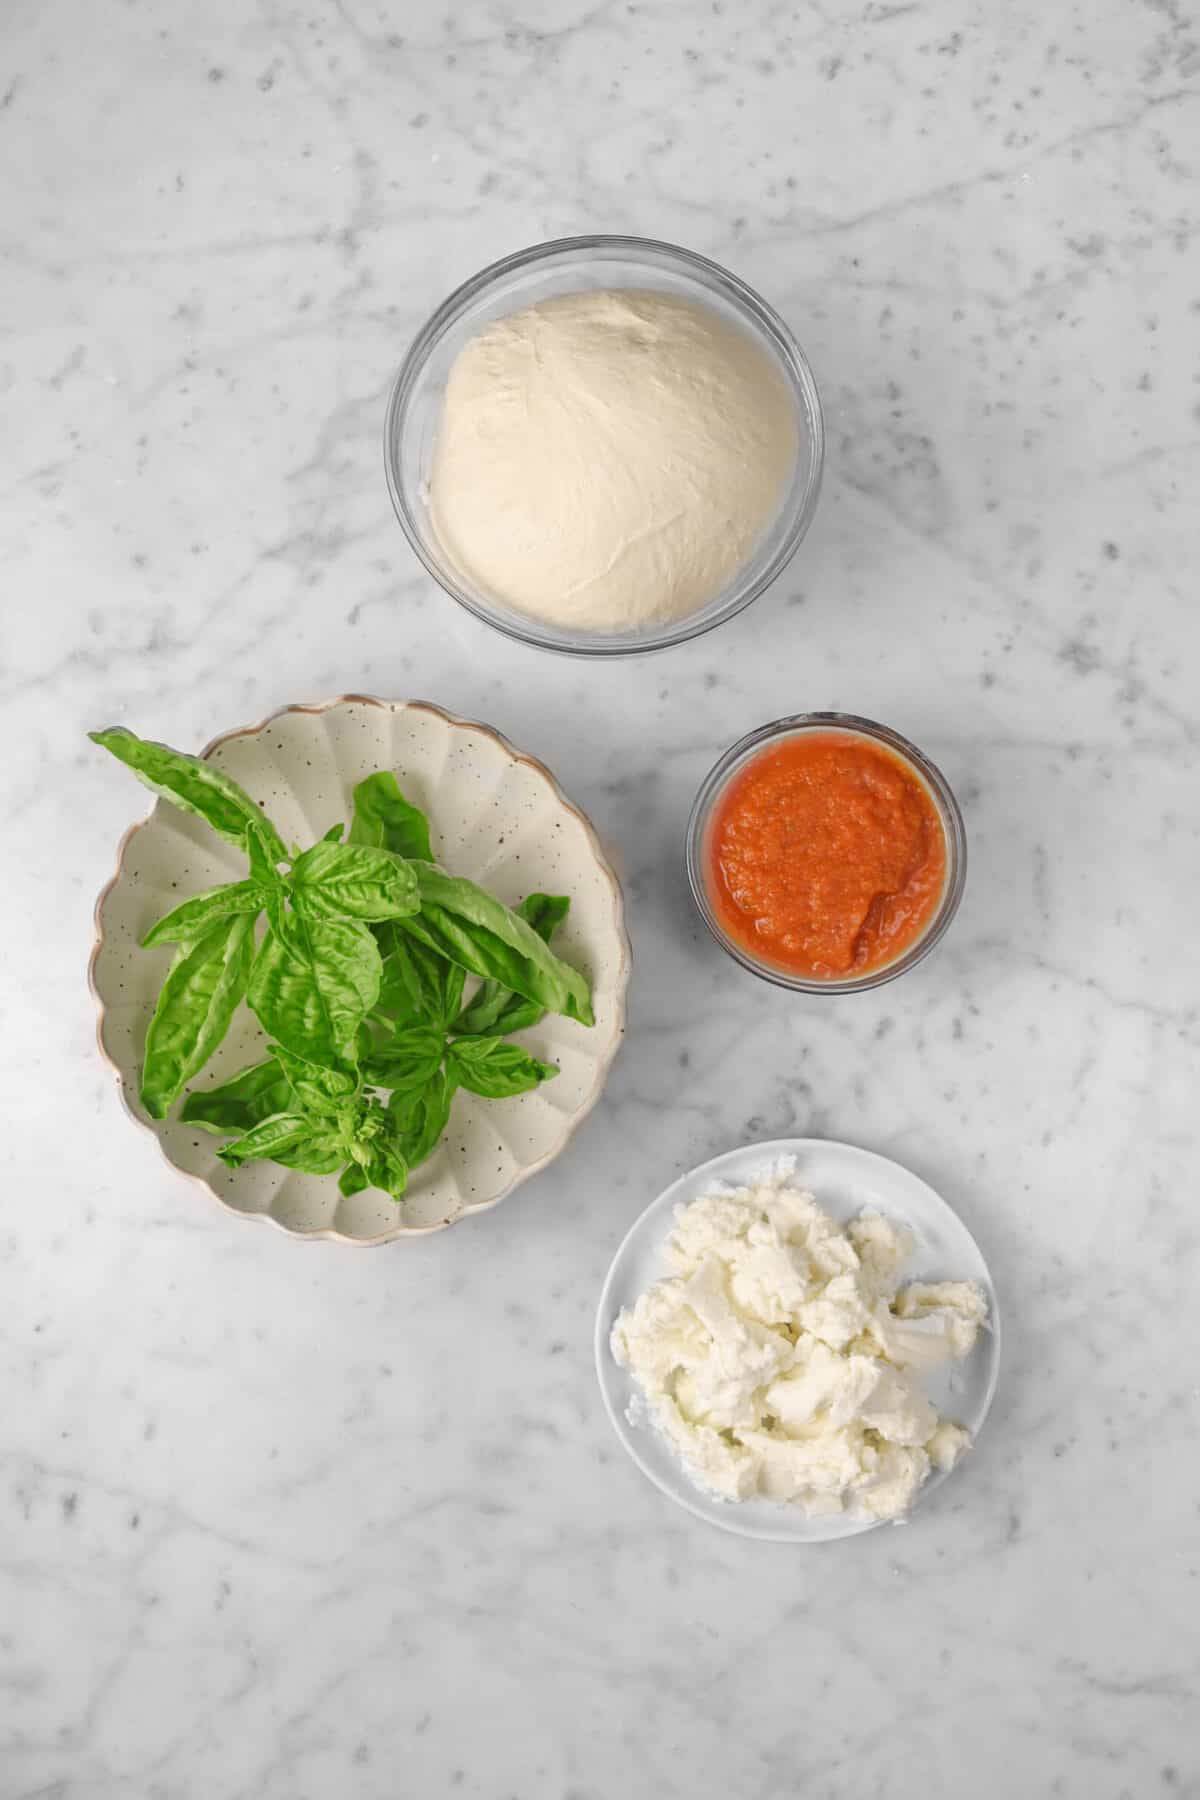 pizza dough, tomato sauce, cheese, and basil on a marble counter